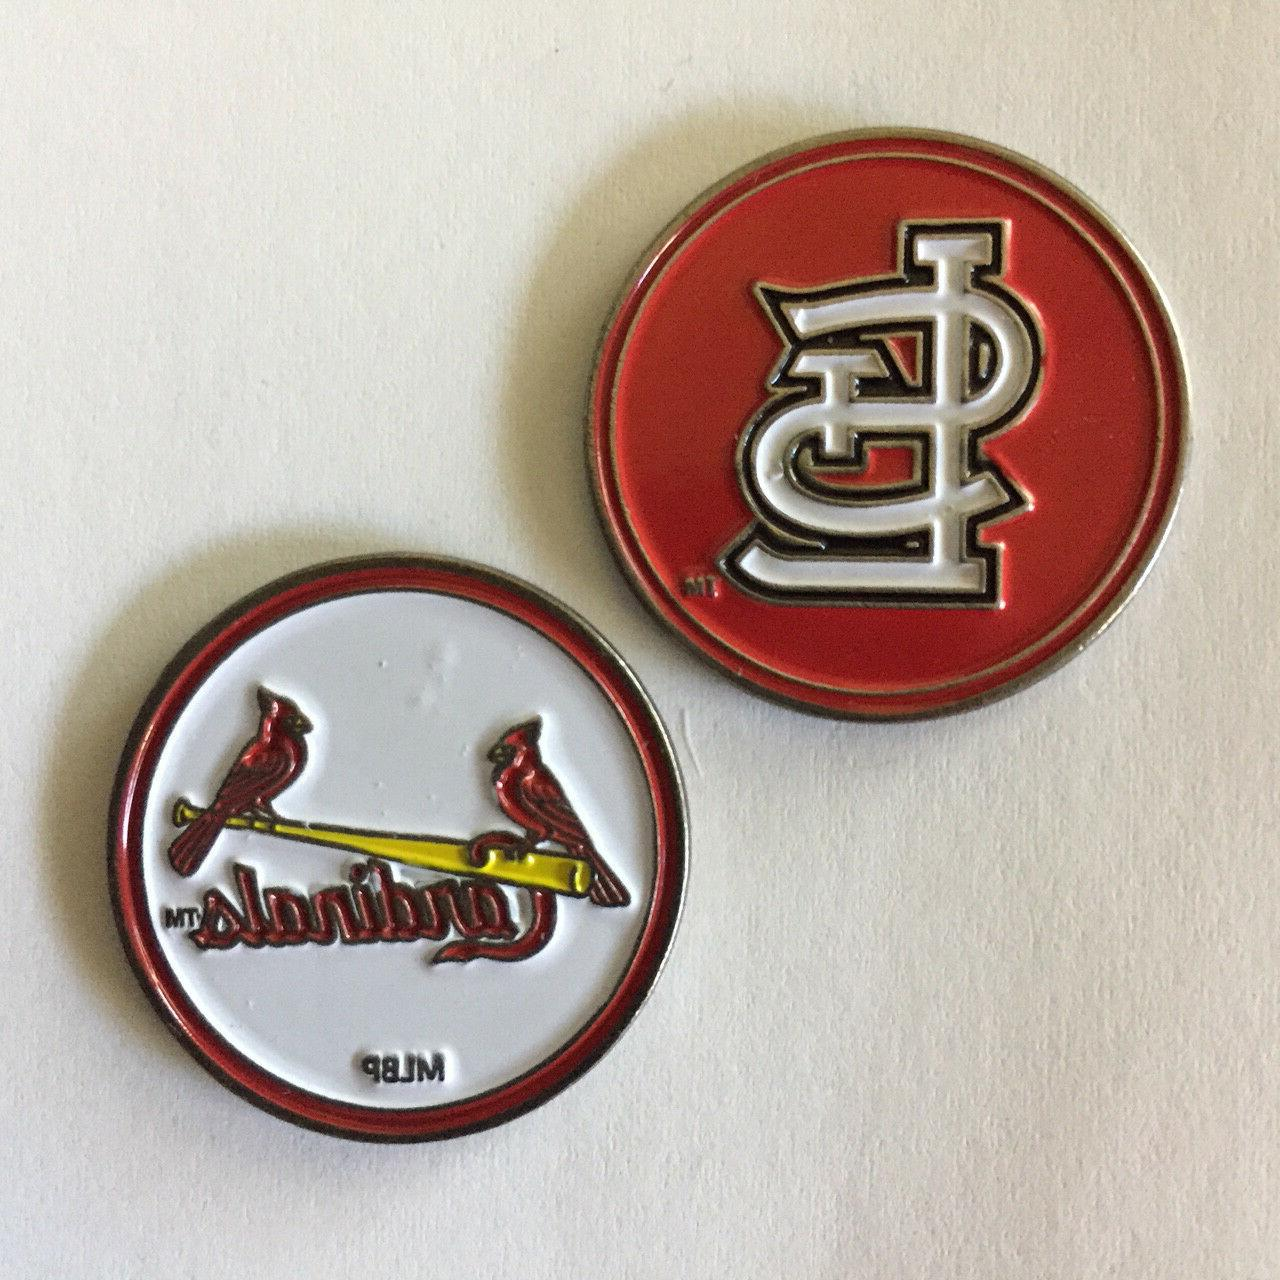 st louis cardinals mlb golf ball marker